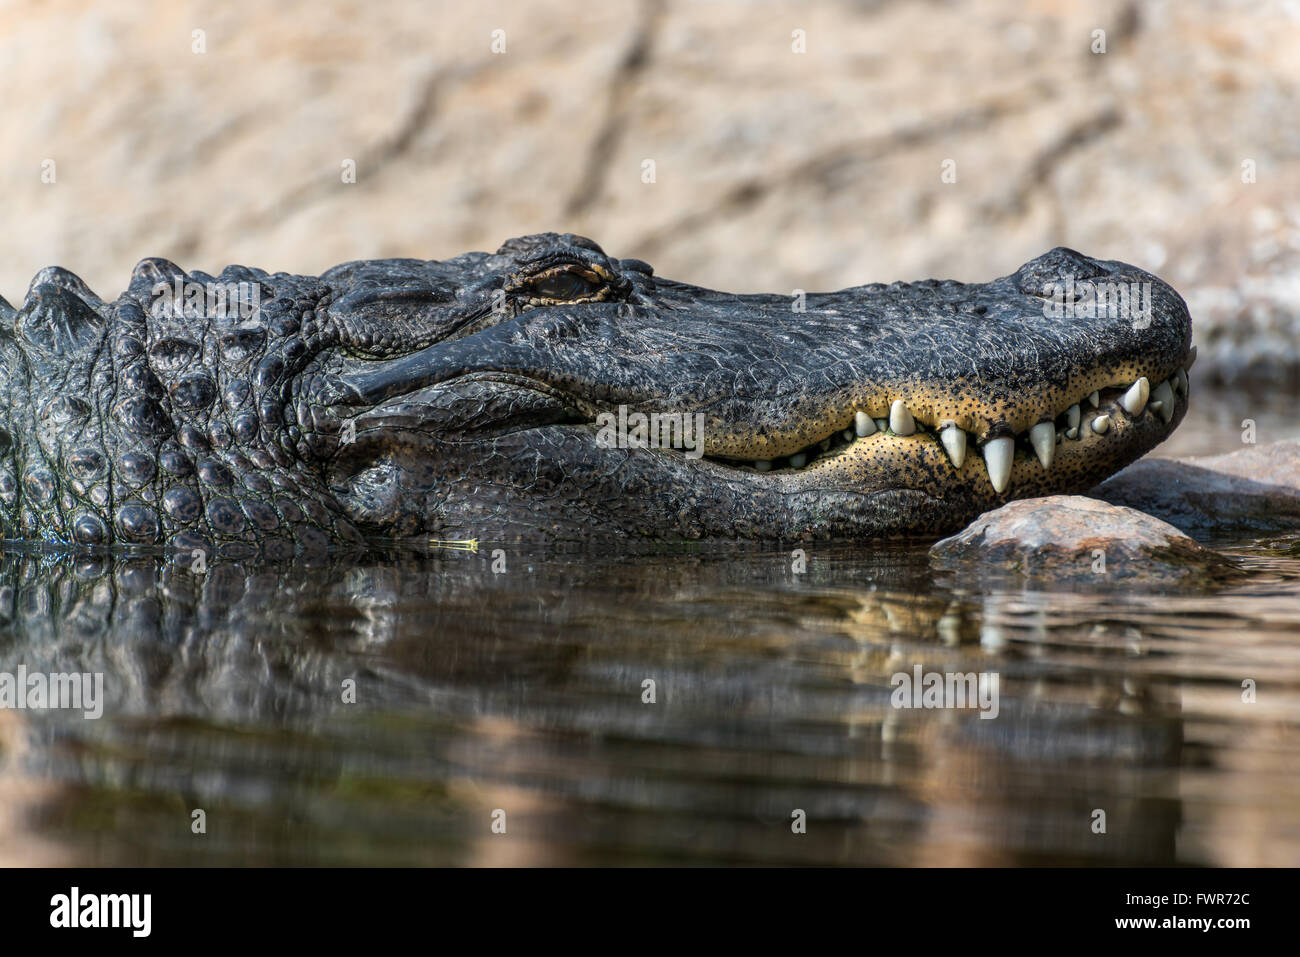 Side view of an American Alligator's head showing the mouth and teeth - Stock Image